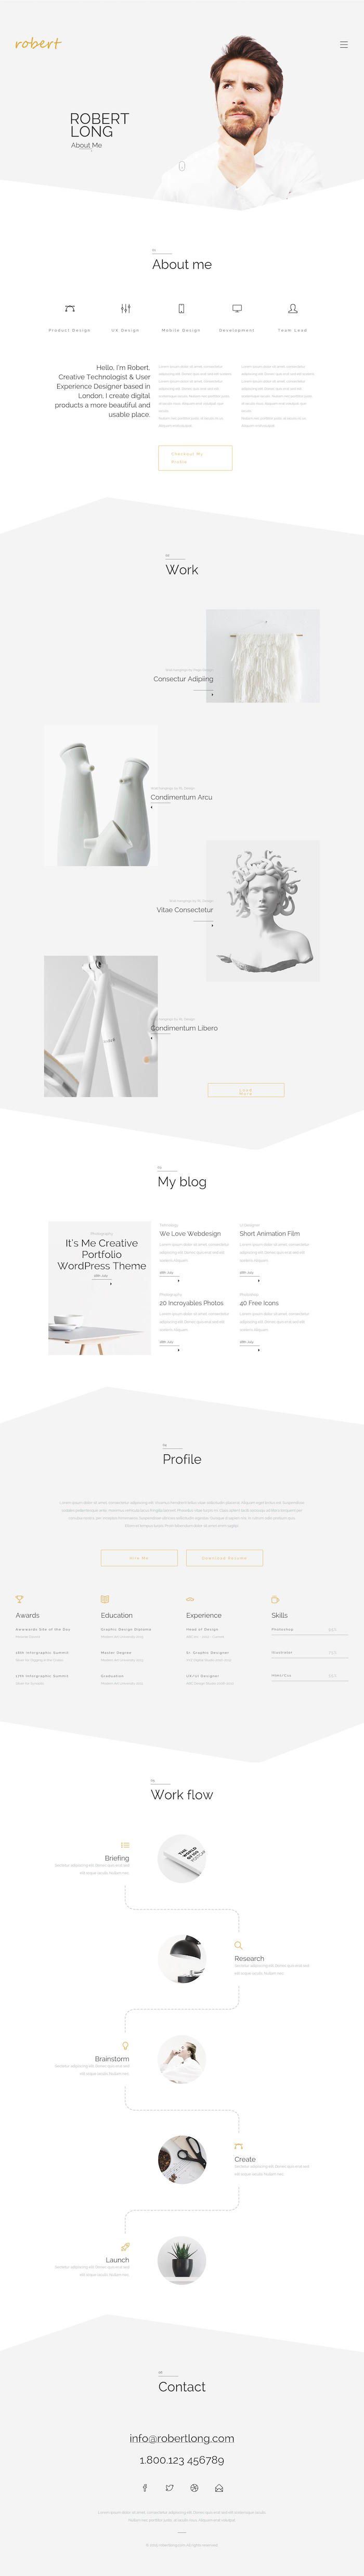 its me creative personal portfolio website design - Web Designer Resume